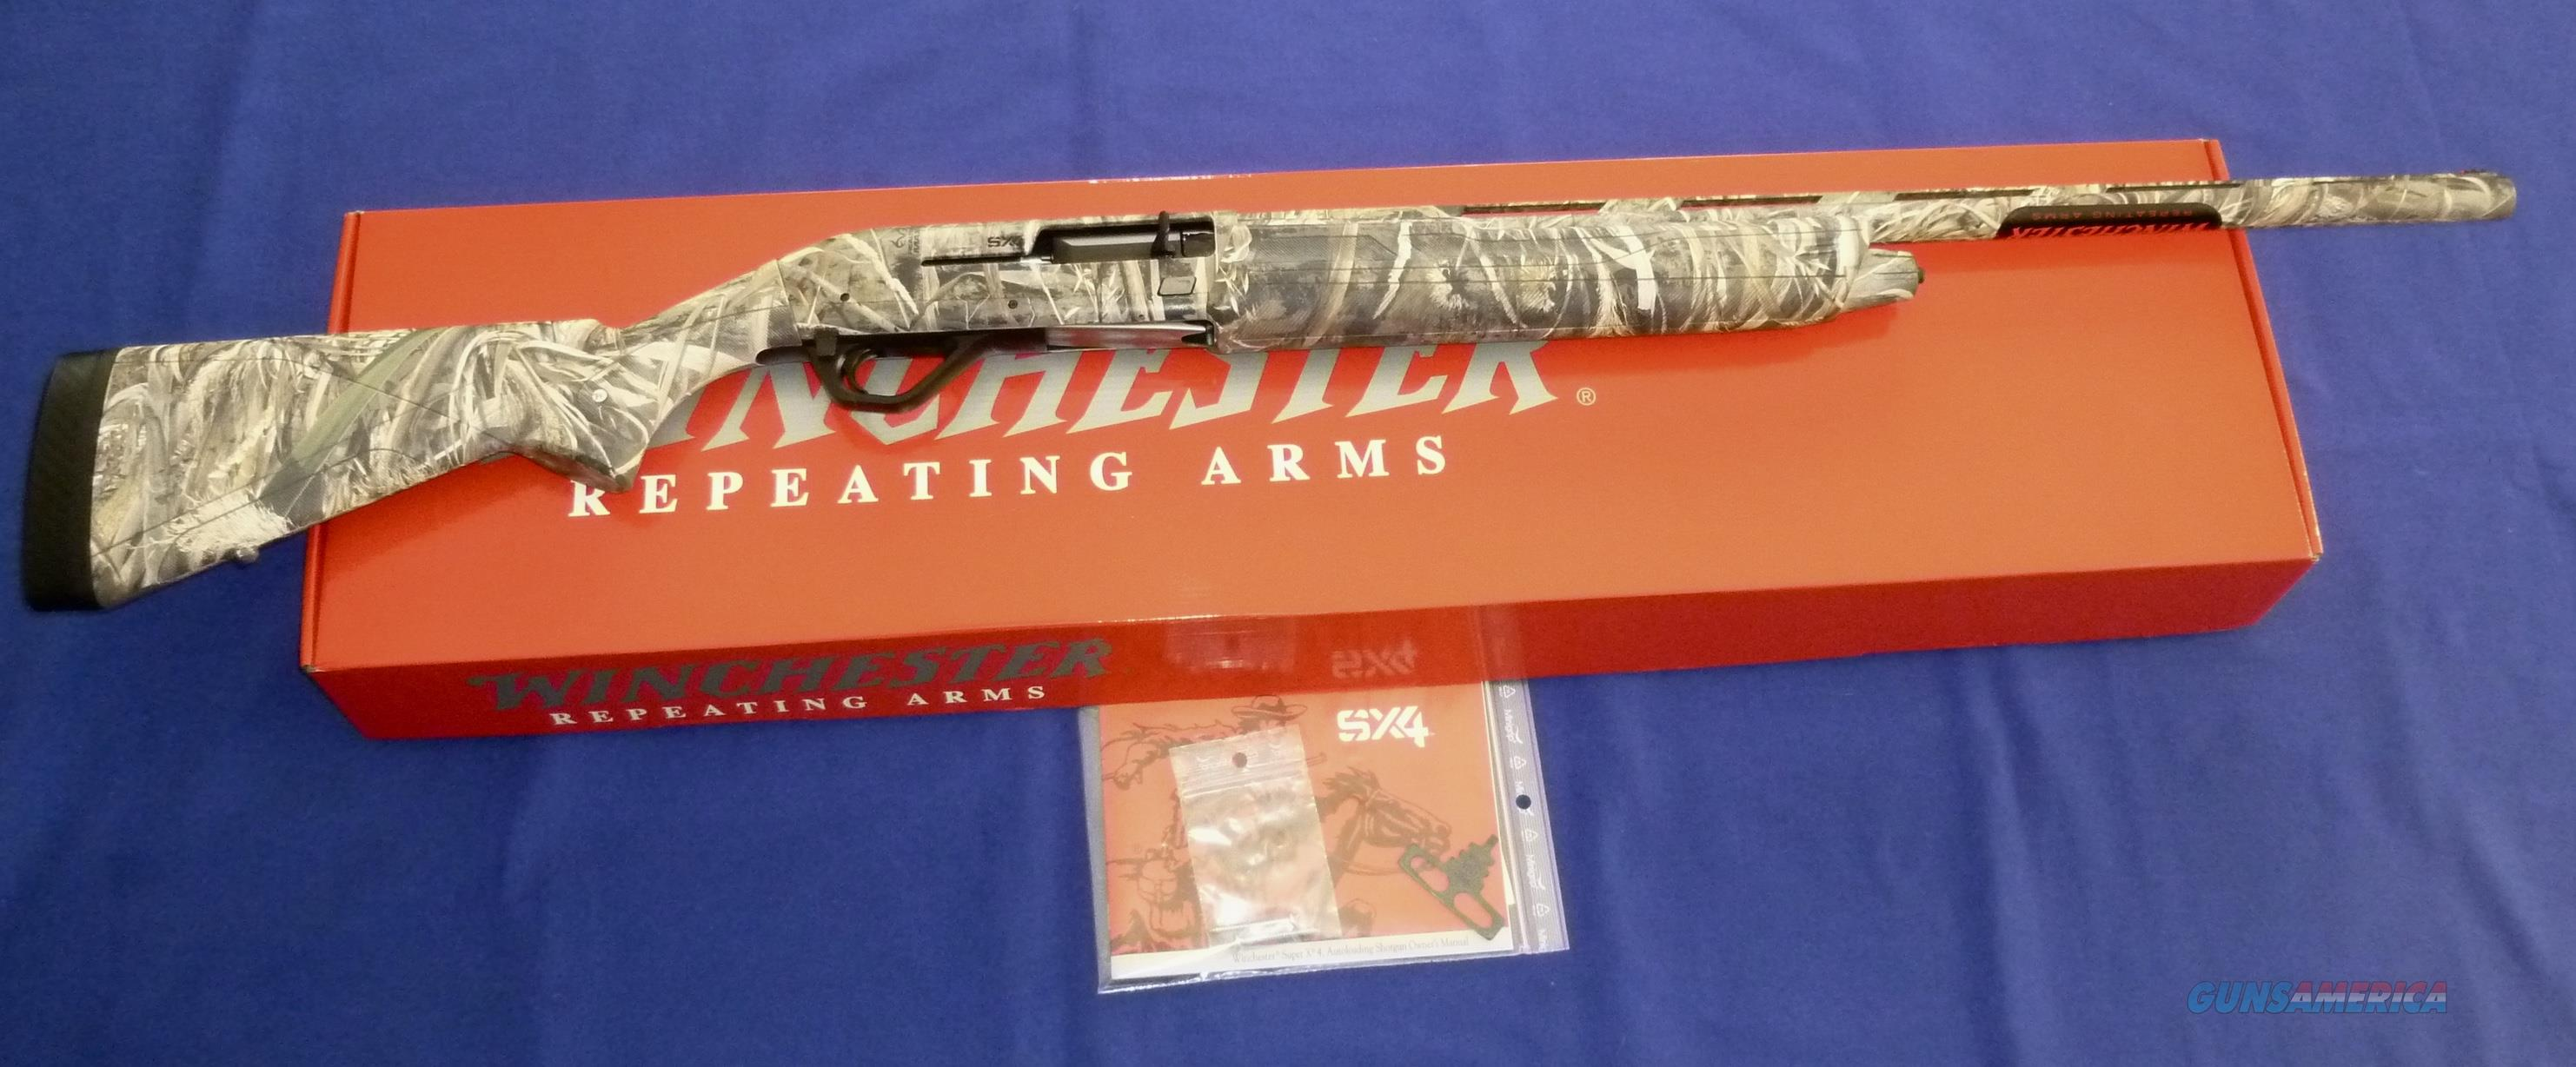 WINCHESTER SX4 MAX 5 WATERFOWL 12 GAUGE 3.5 MAGNUM SEMI-AUTO SHOTGUN NEW!  Guns > Shotguns > Winchester Shotguns - Modern > Autoloaders > Hunting